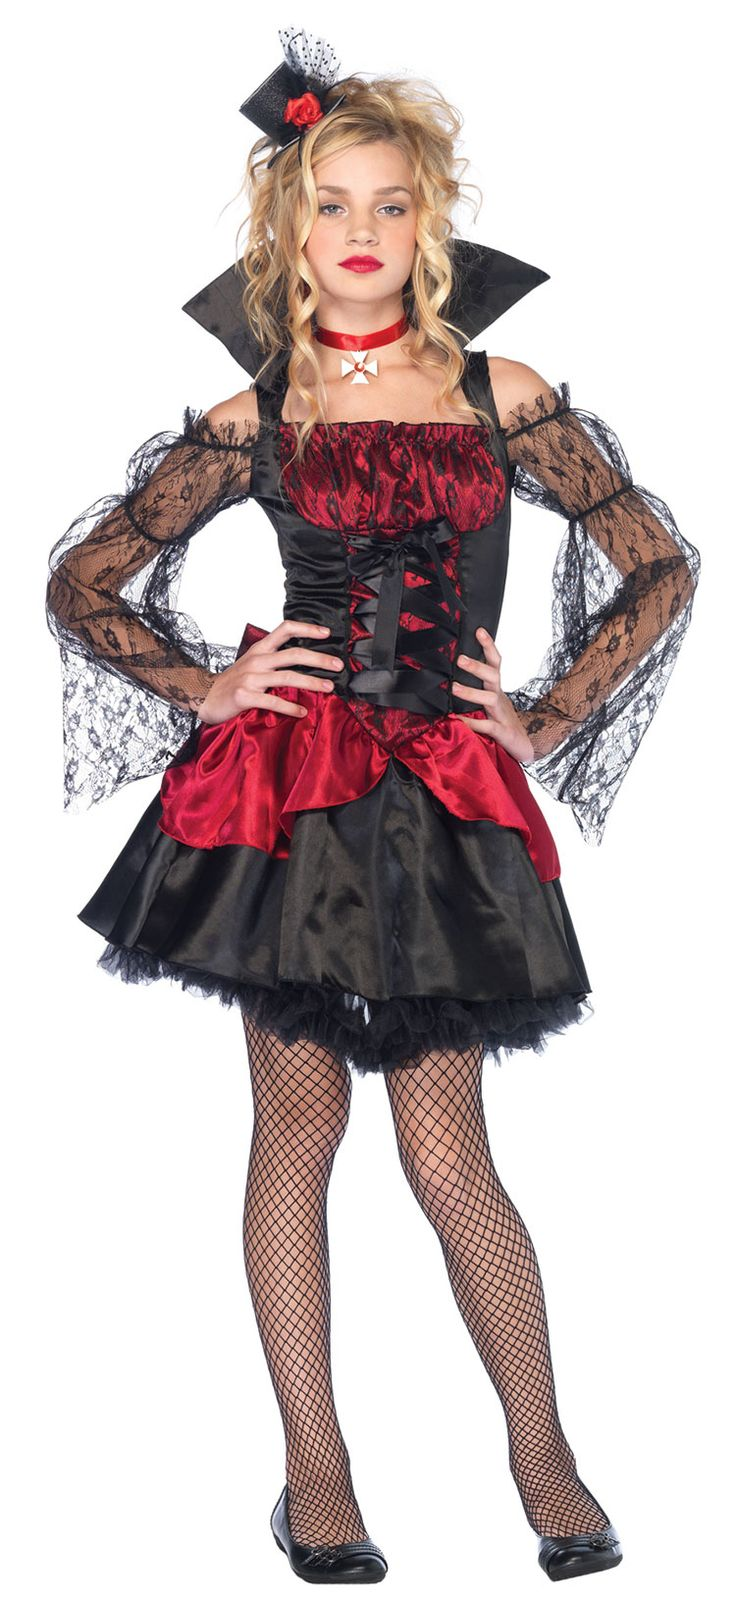 Best 25+ Vampire costumes ideas on Pinterest | Halloween vampire ...